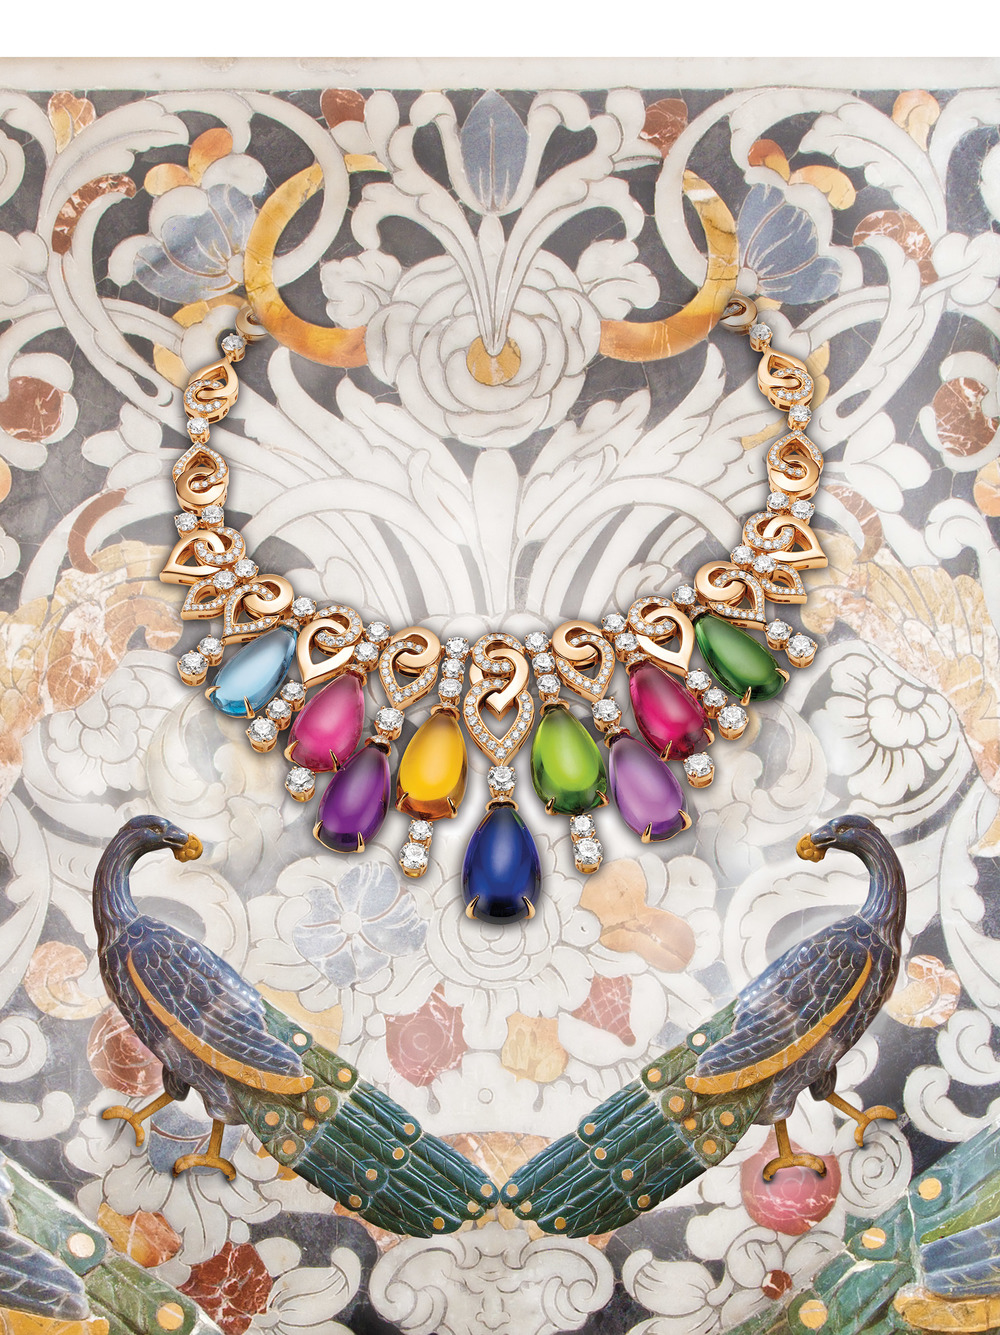 Bulgari High Jewellery Necklace  In a vivid burst, an explosion of colour paints the world with the freshness of art born anew. 18K pink gold necklace with 1 tanzanite, 2 amethysts, 1 peridot, 1 rubellite, 1 tourmaline, 1 pink tourmaline, 1 citrine quartz, 1 aquamarine, 49 round brilliant-cut diamonds and pavé diamonds.  Price upon request,1.800.BVLGARI   Bulgari.com